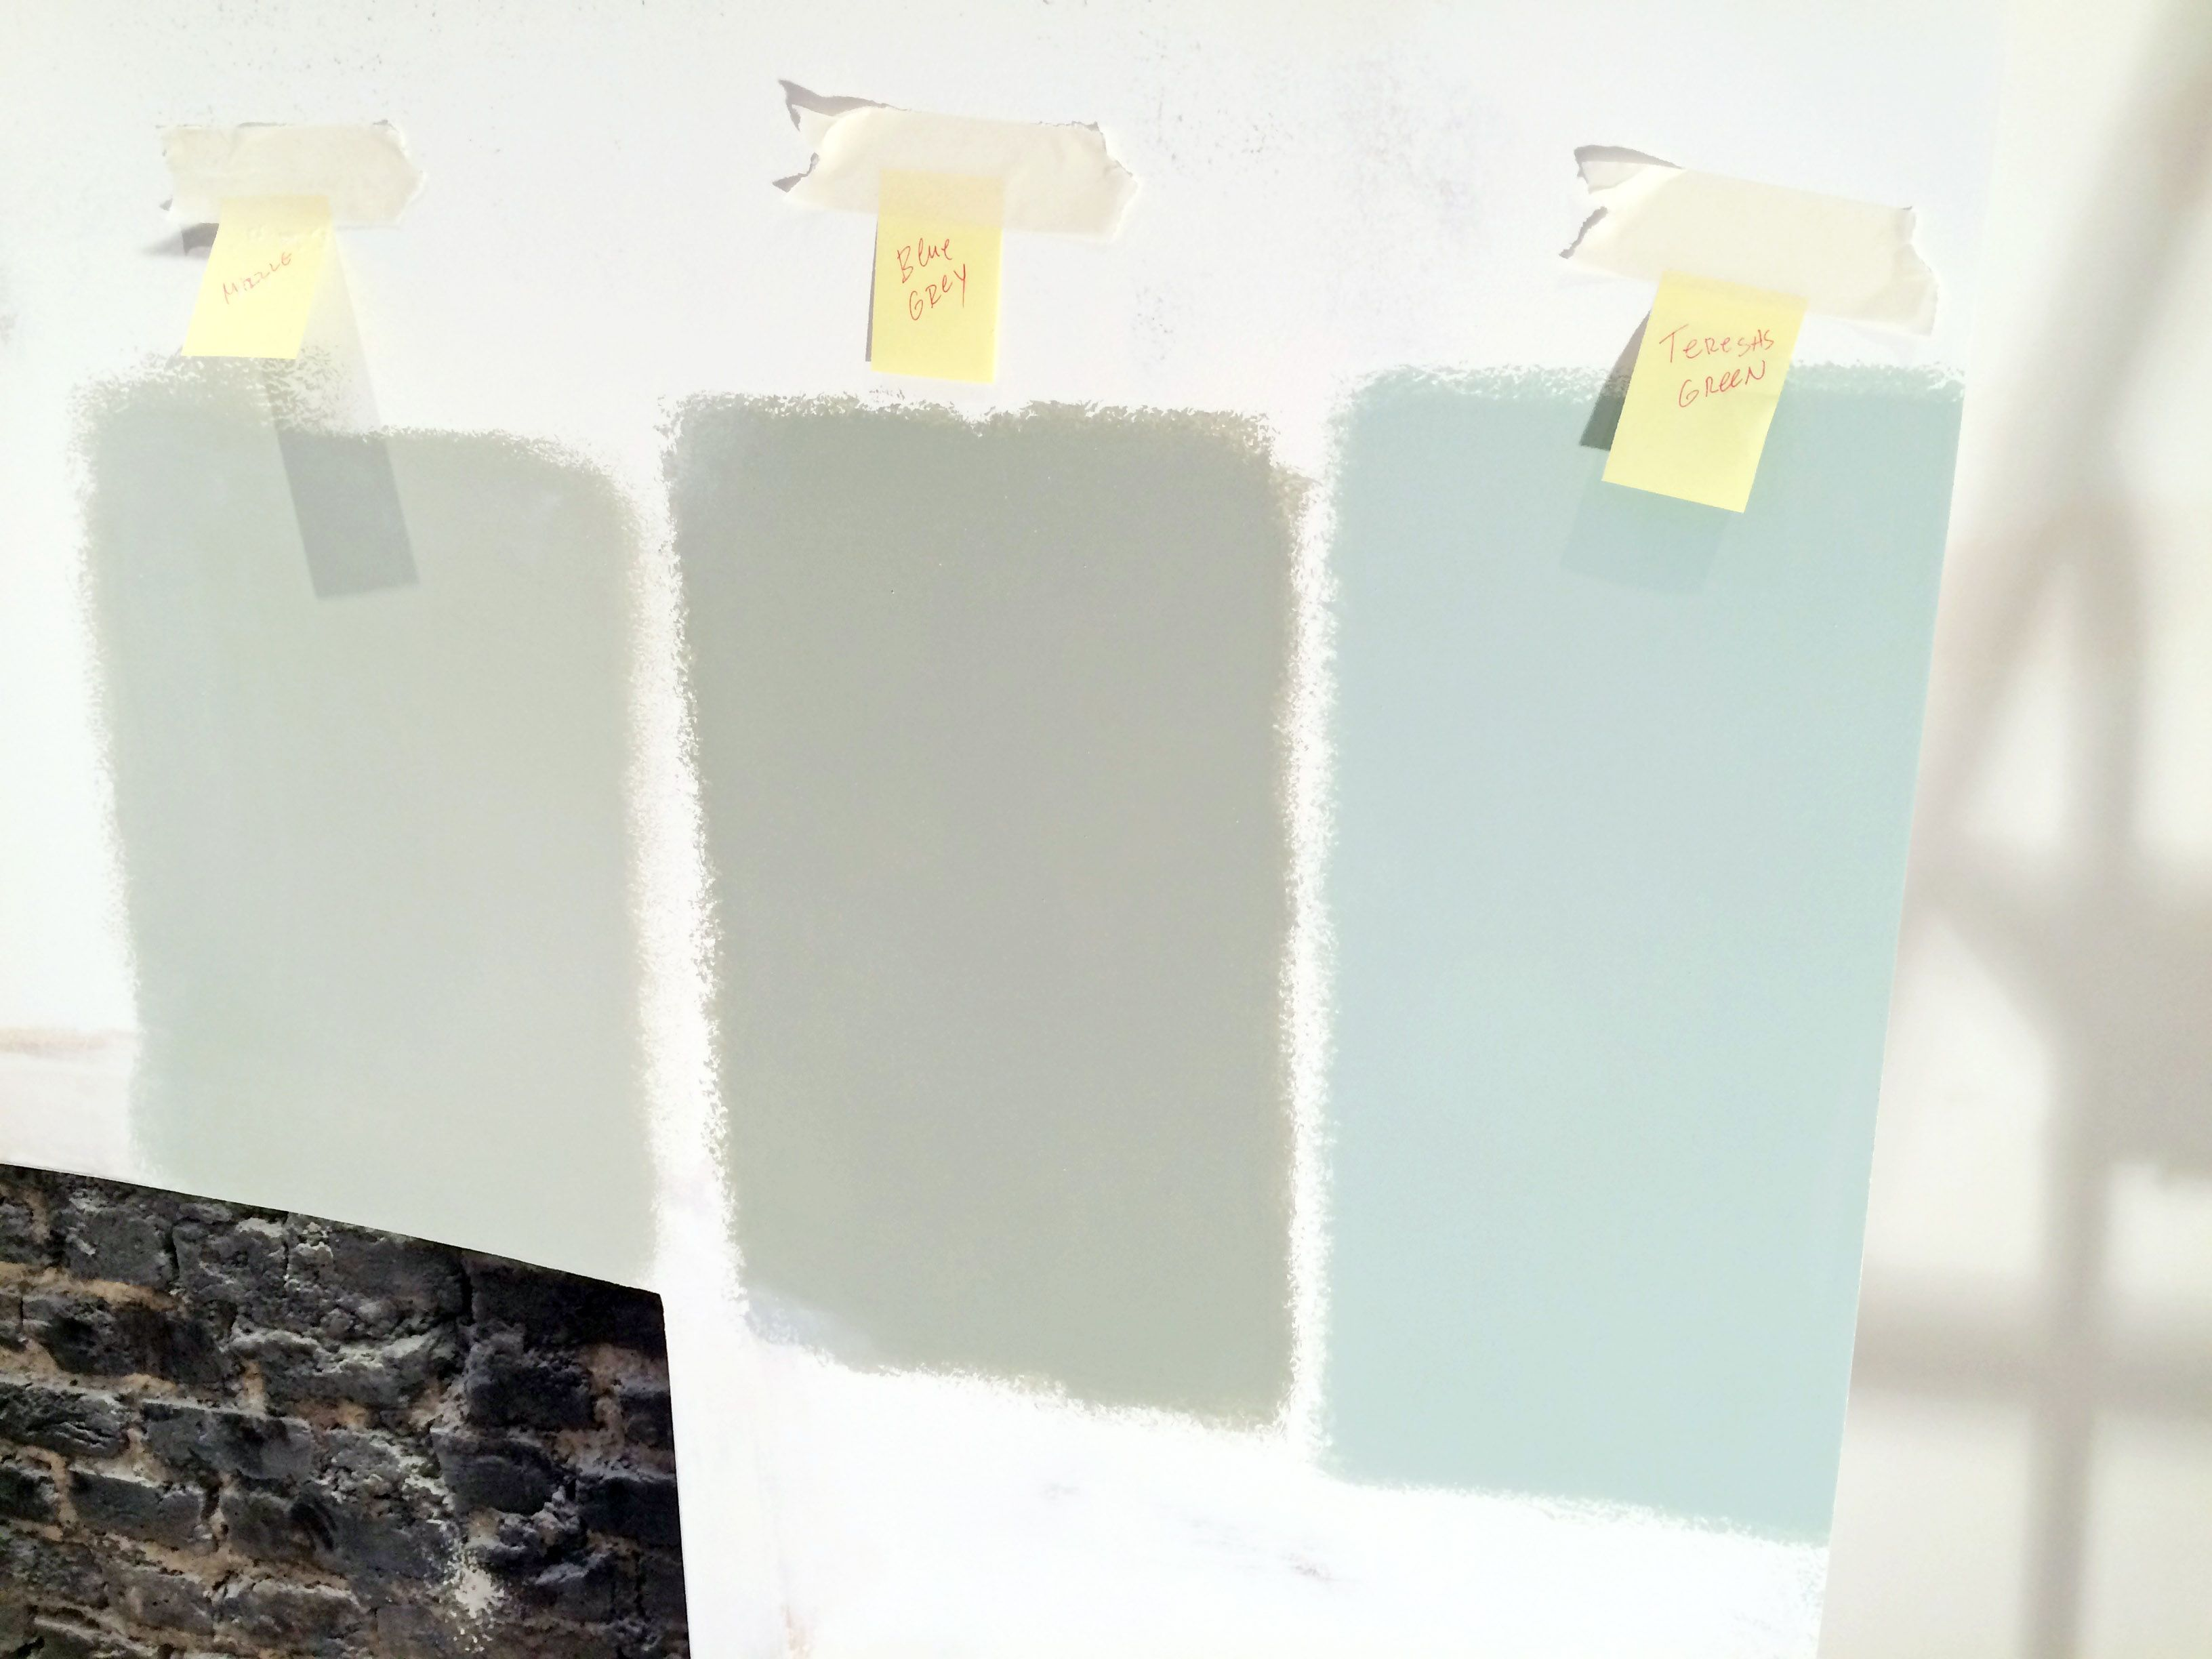 apm farrow and ball paint swatches mizzle 266 blue gray 91 teresa 39 s green 236 these are all. Black Bedroom Furniture Sets. Home Design Ideas